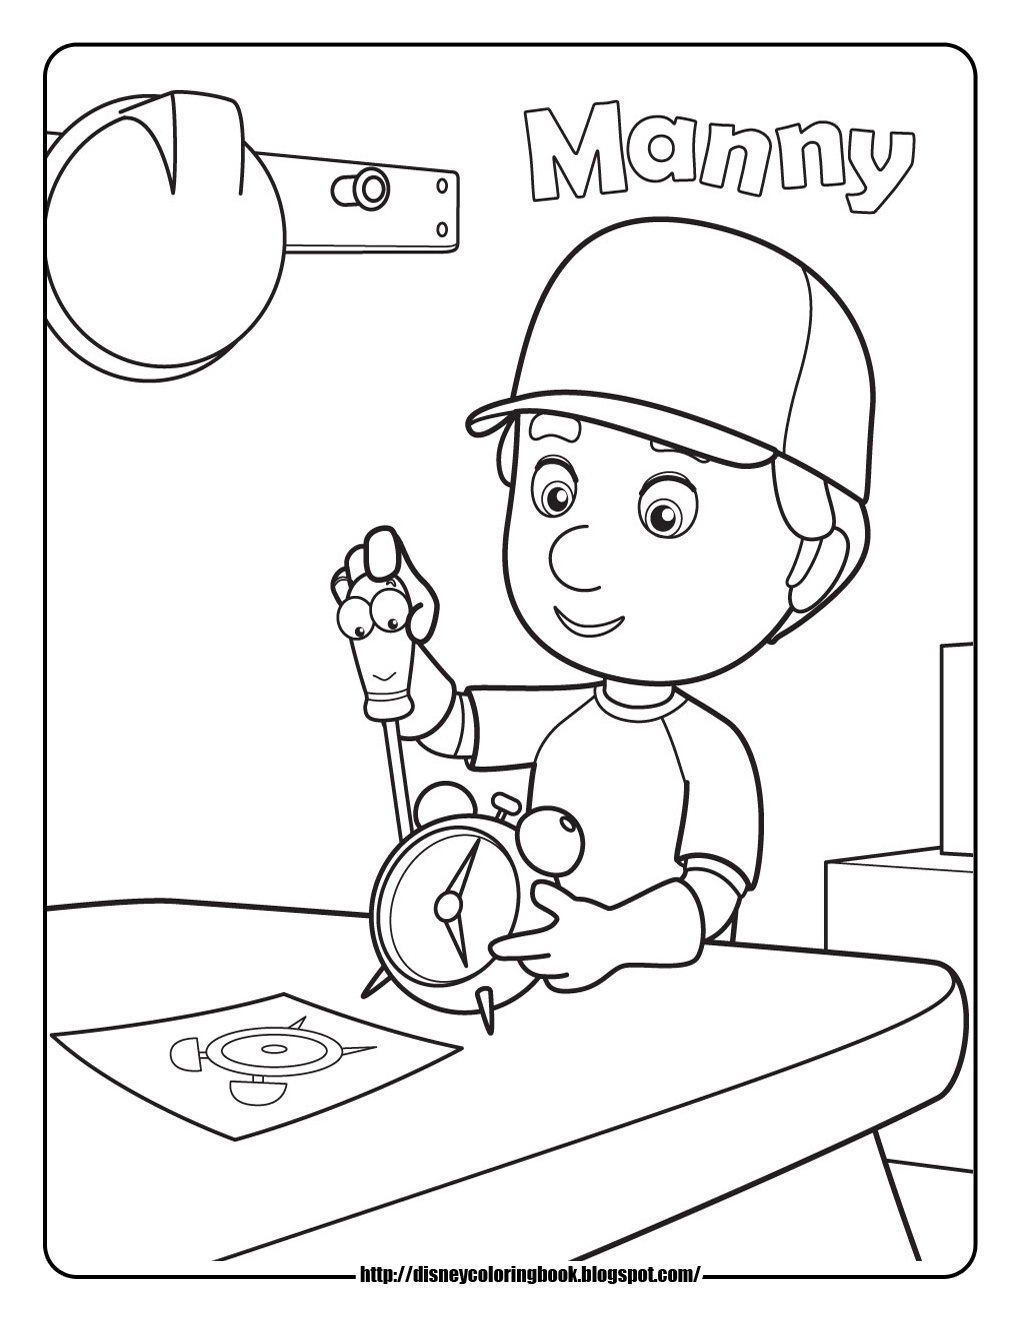 handymanny coloring pages - photo#23